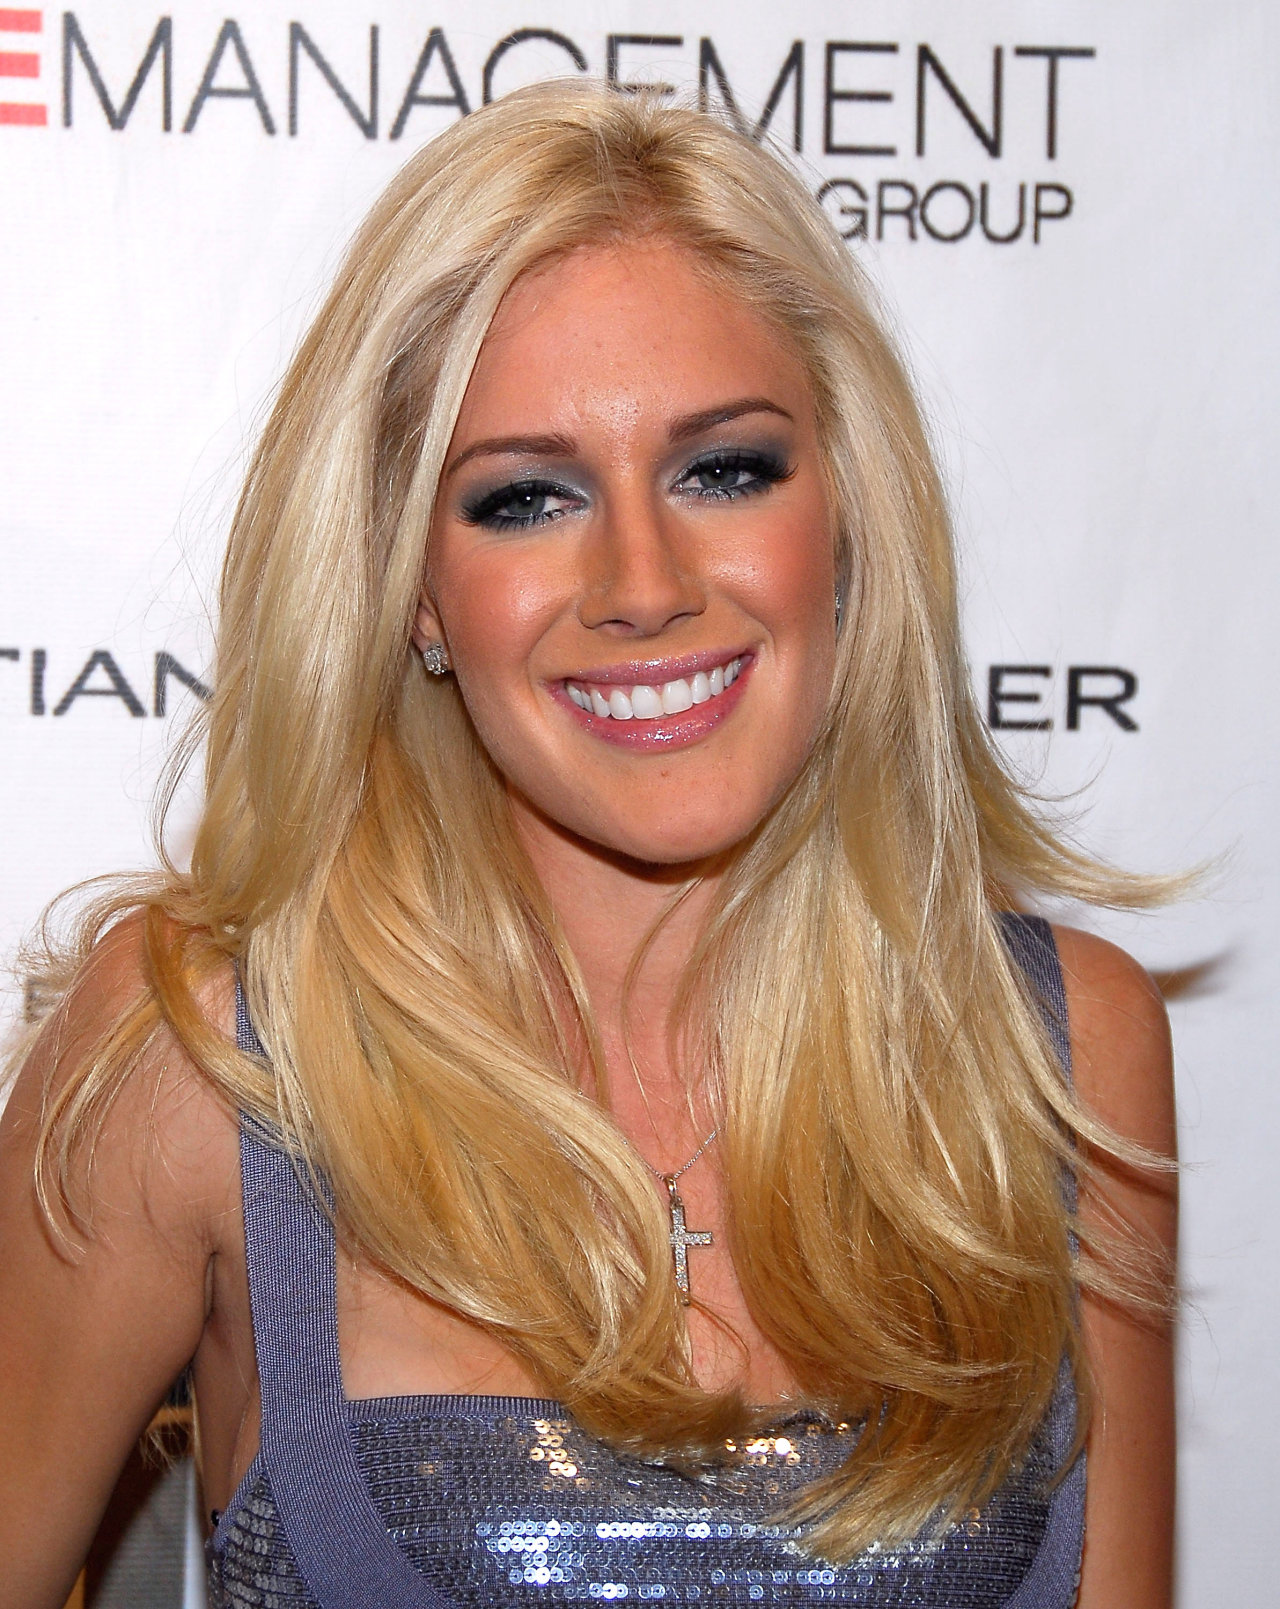 Heidi Montag leaked photos